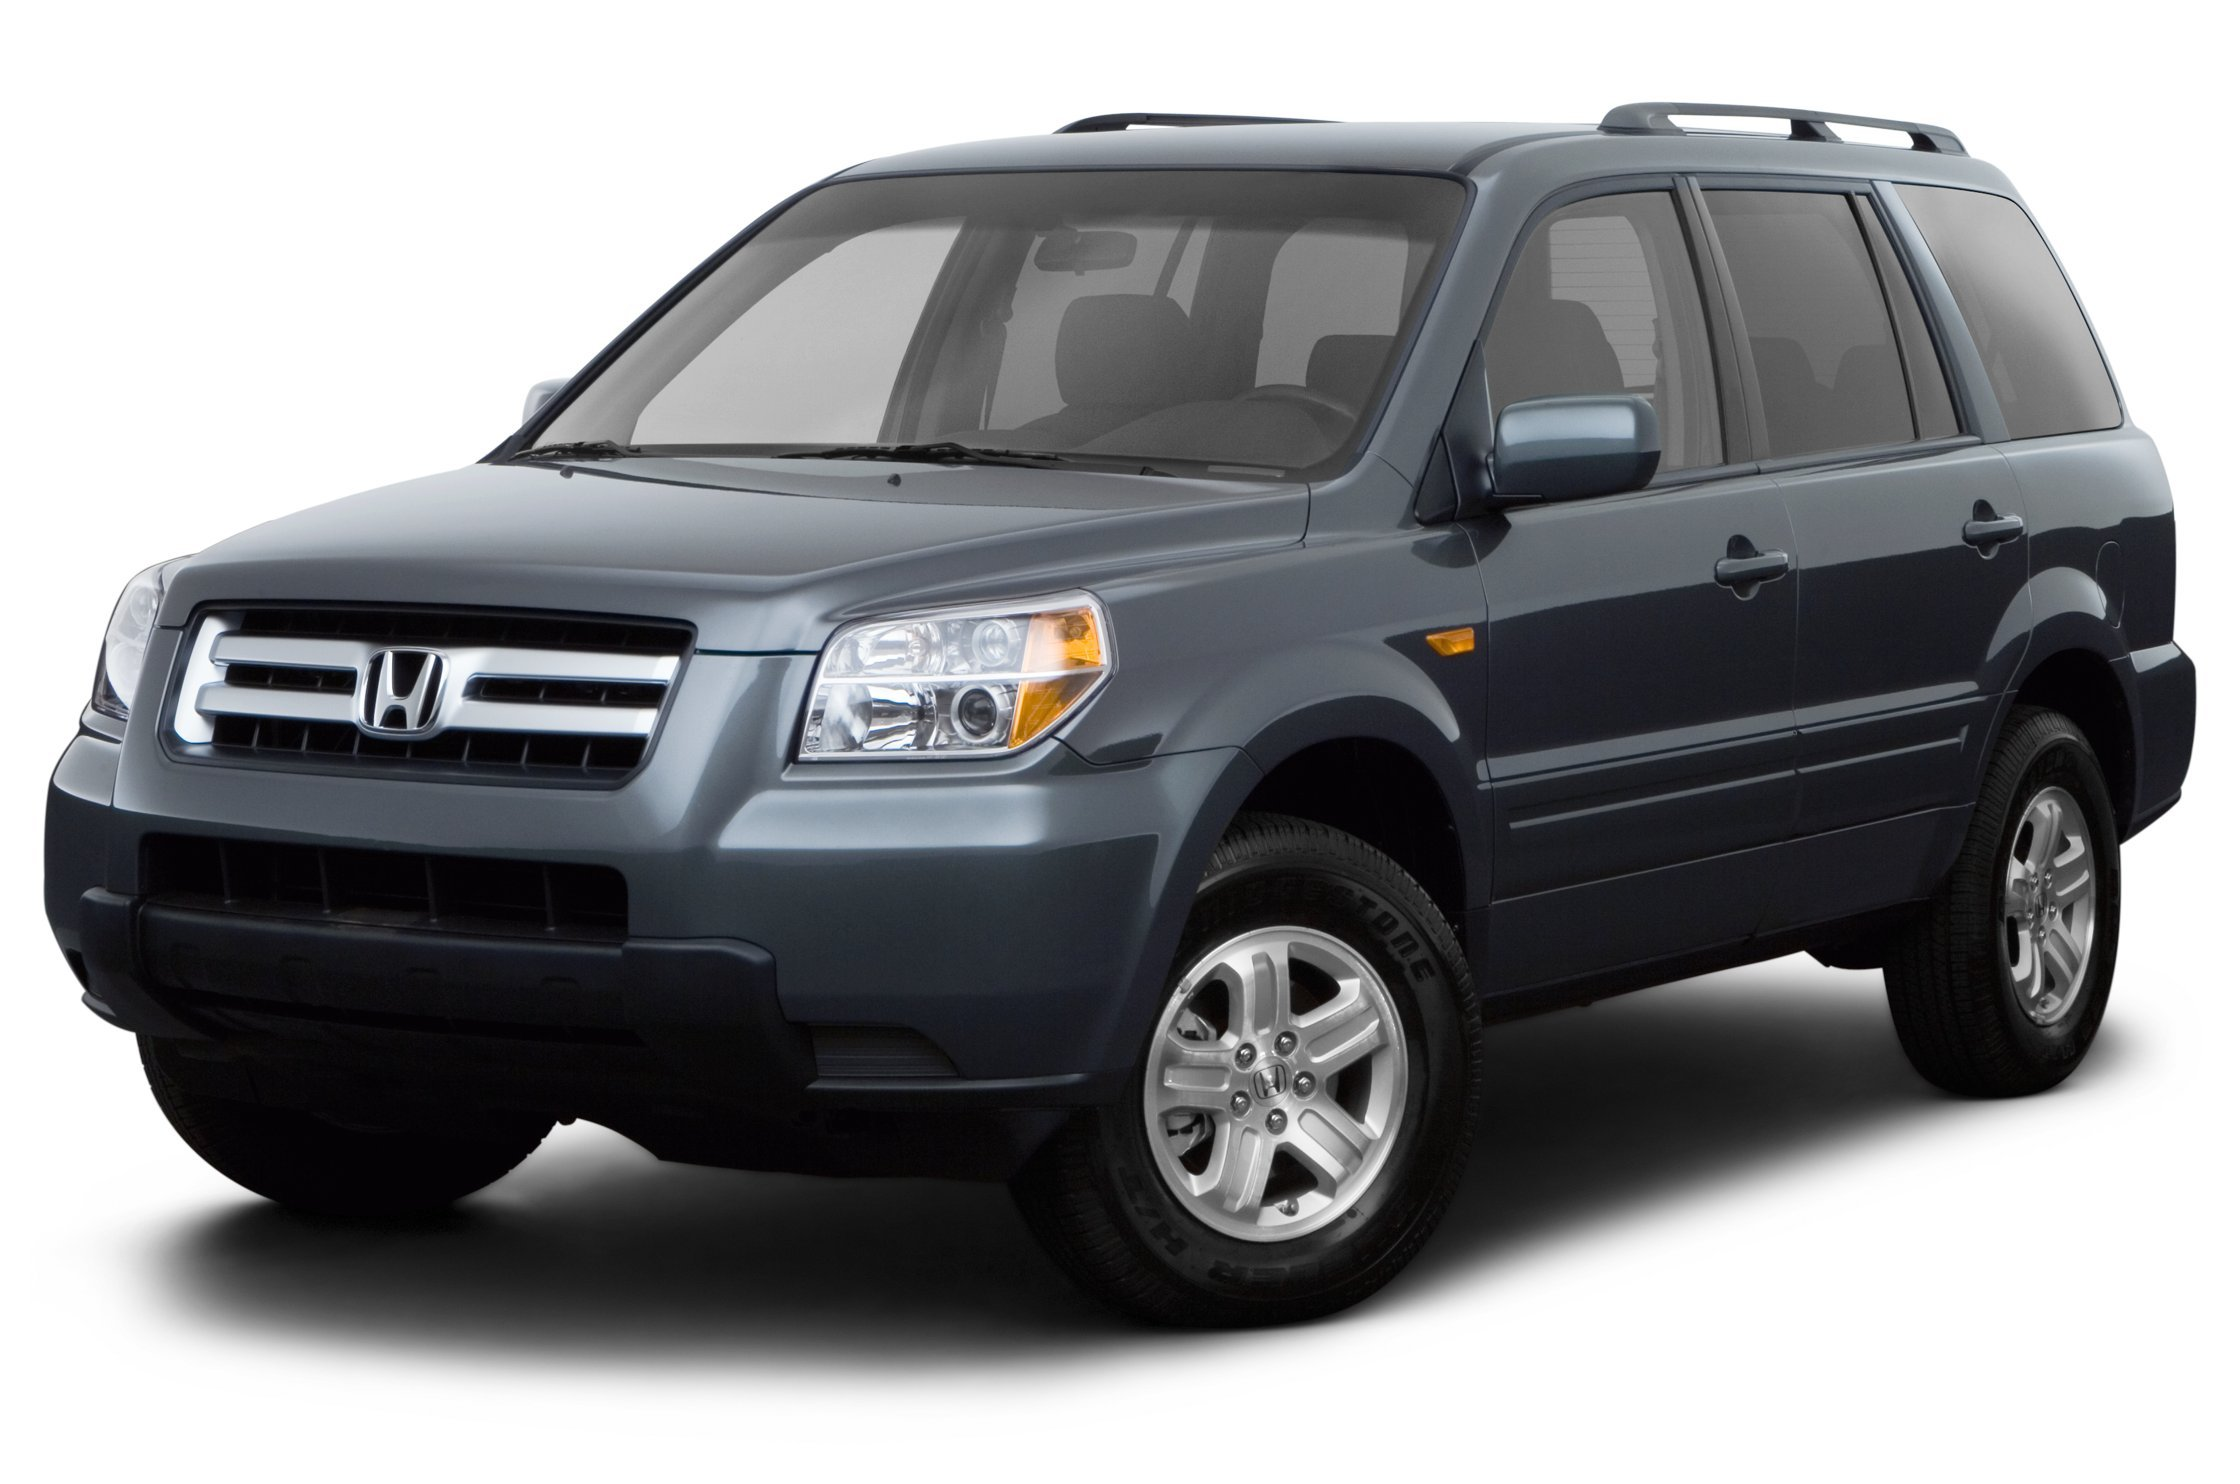 Amazoncom 2008 Honda Pilot Reviews Images and Specs Vehicles